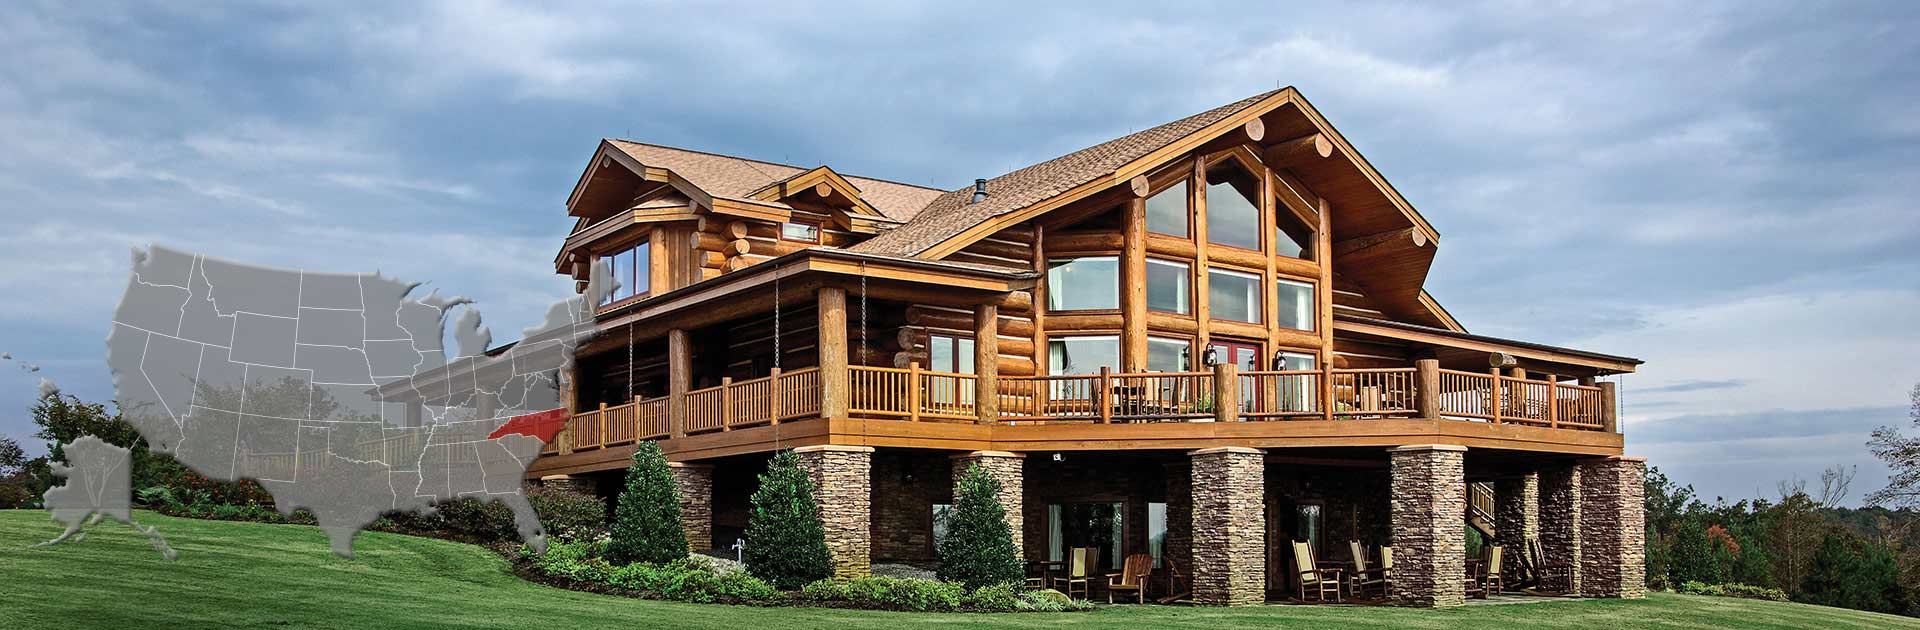 North Carolina log homes